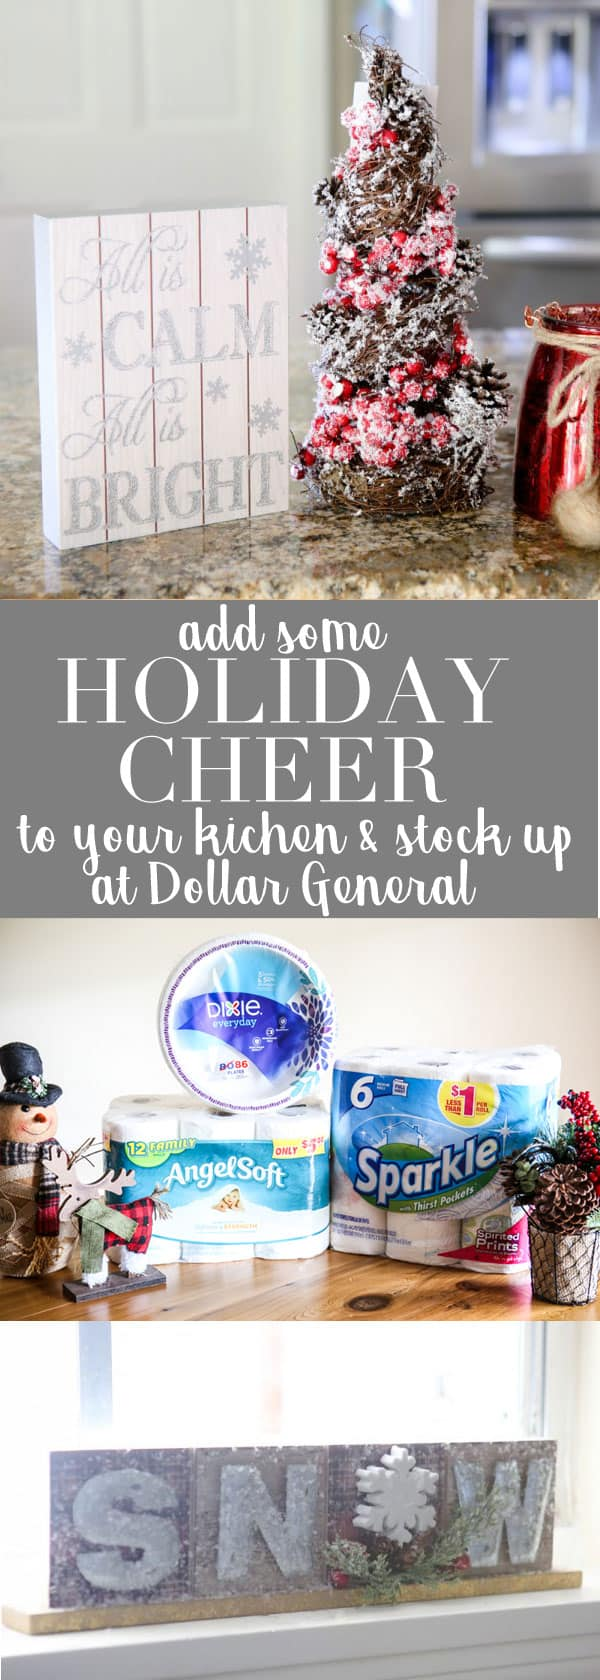 holiday decor and dollar general banner